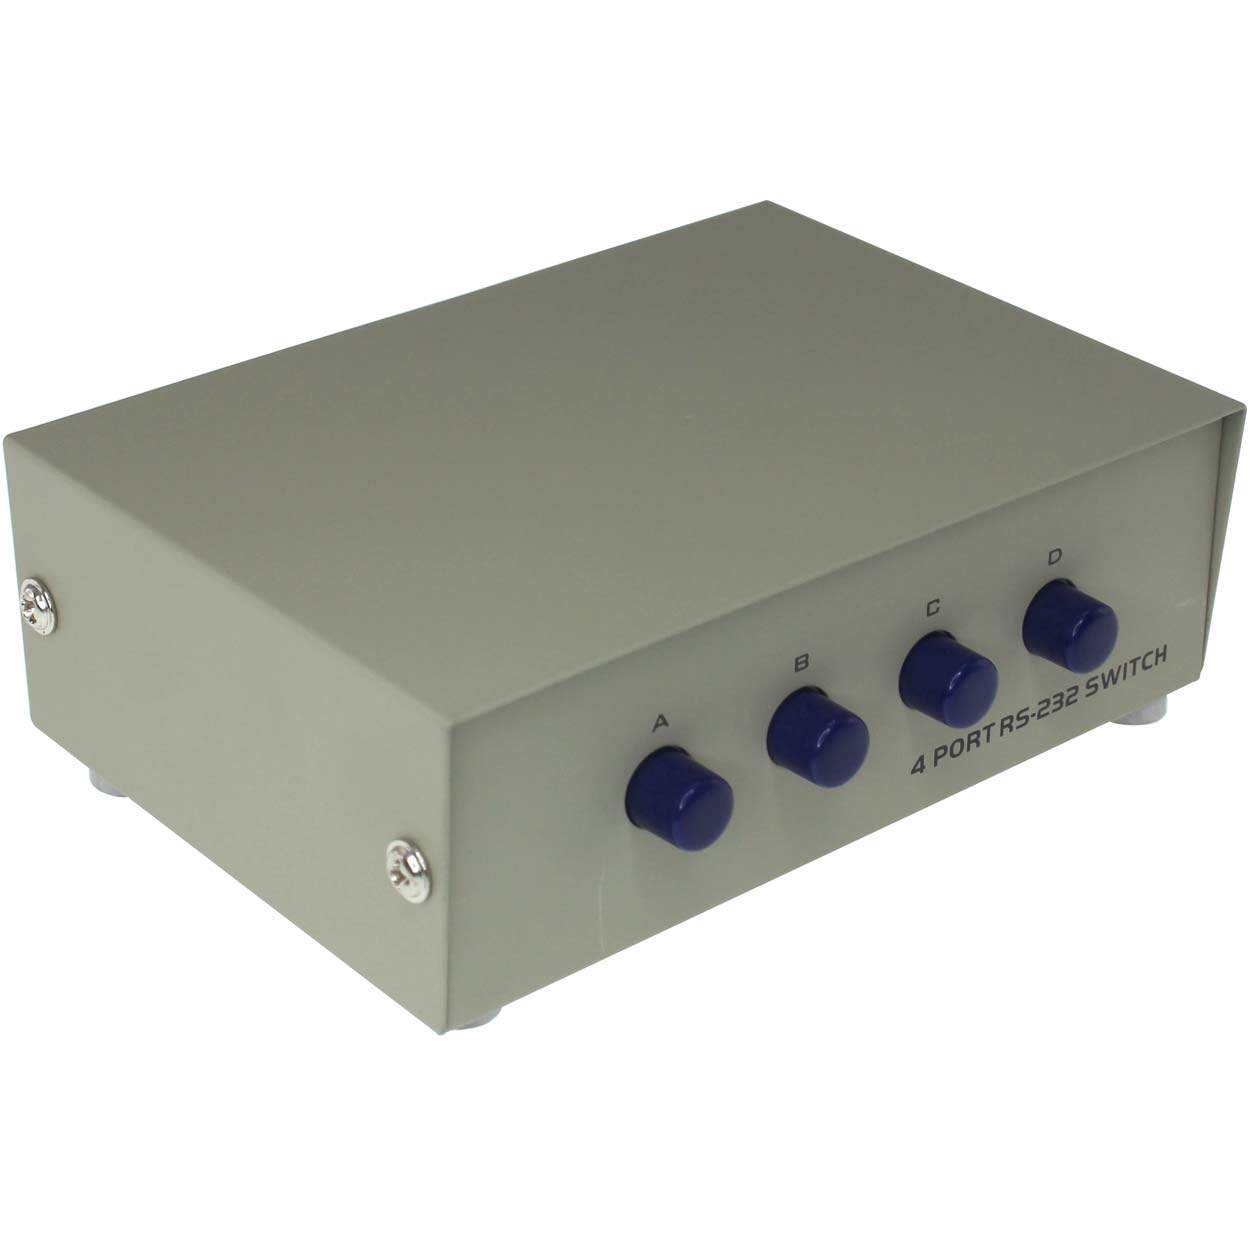 4 Port Manual DB9 Share Switch Box, Metal